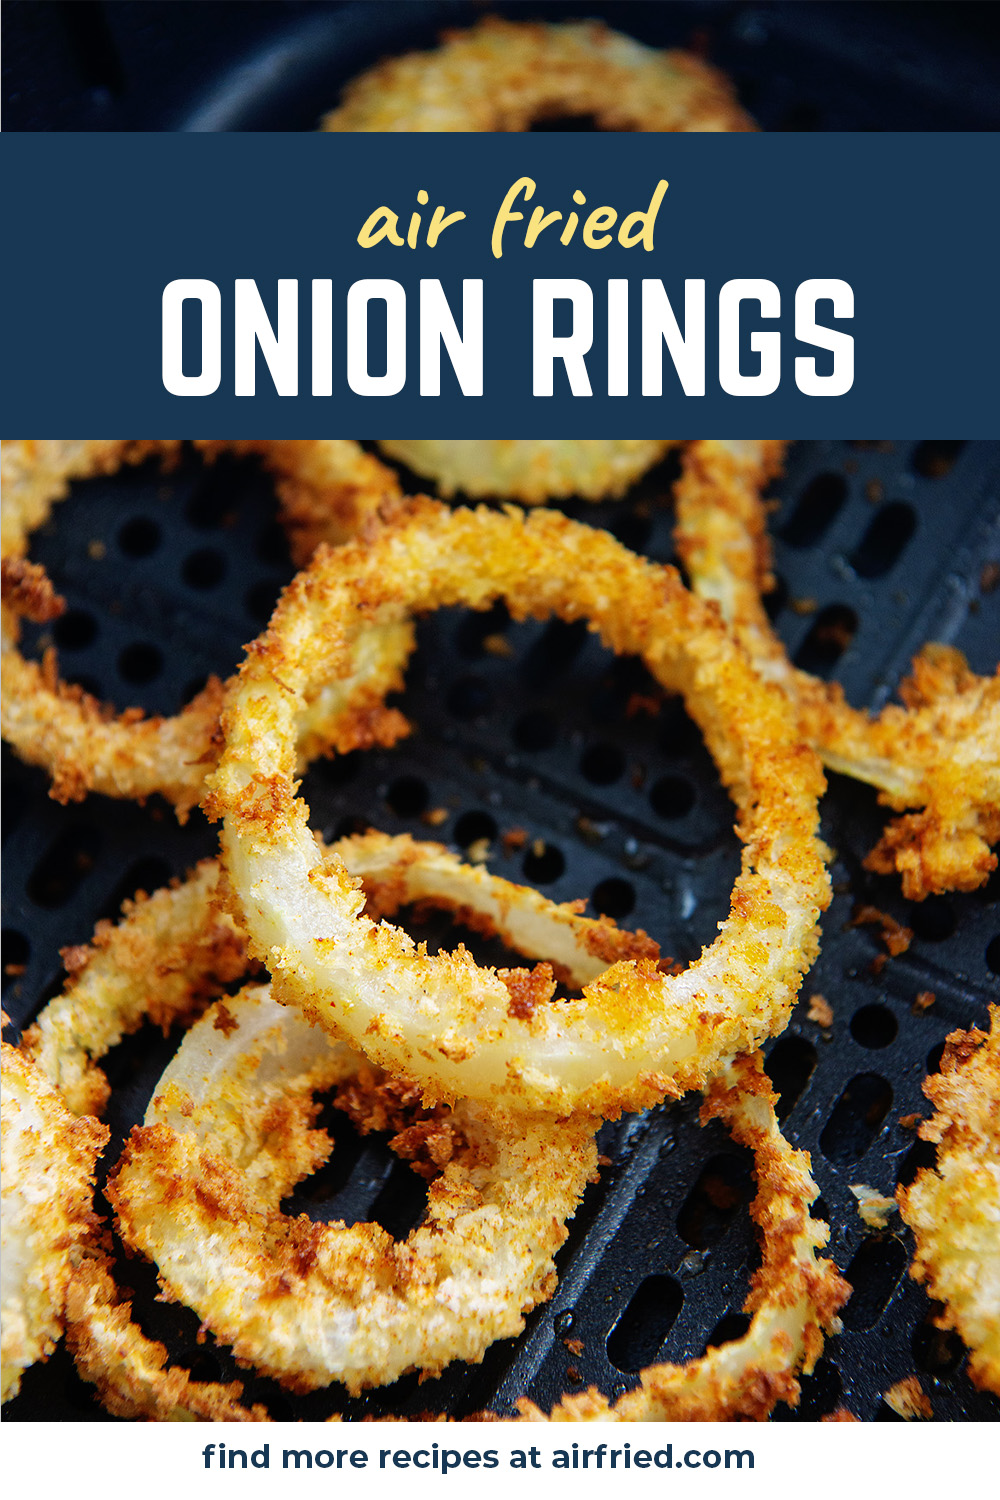 You need to try these crispy, crunchy, healthier onion rings in the air fryer!